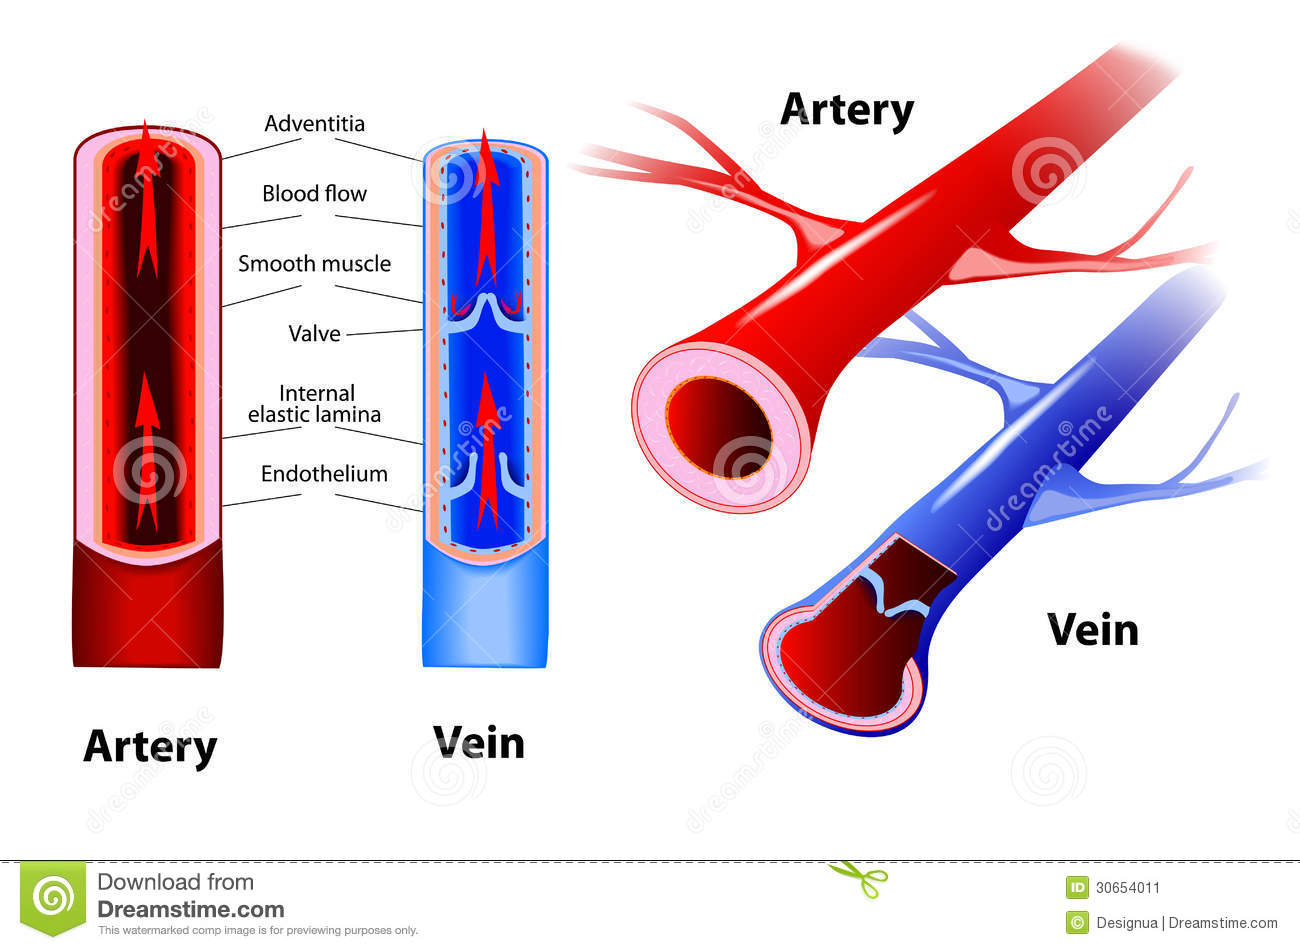 Veins and Arteries - Difference and Comparison | Diffen